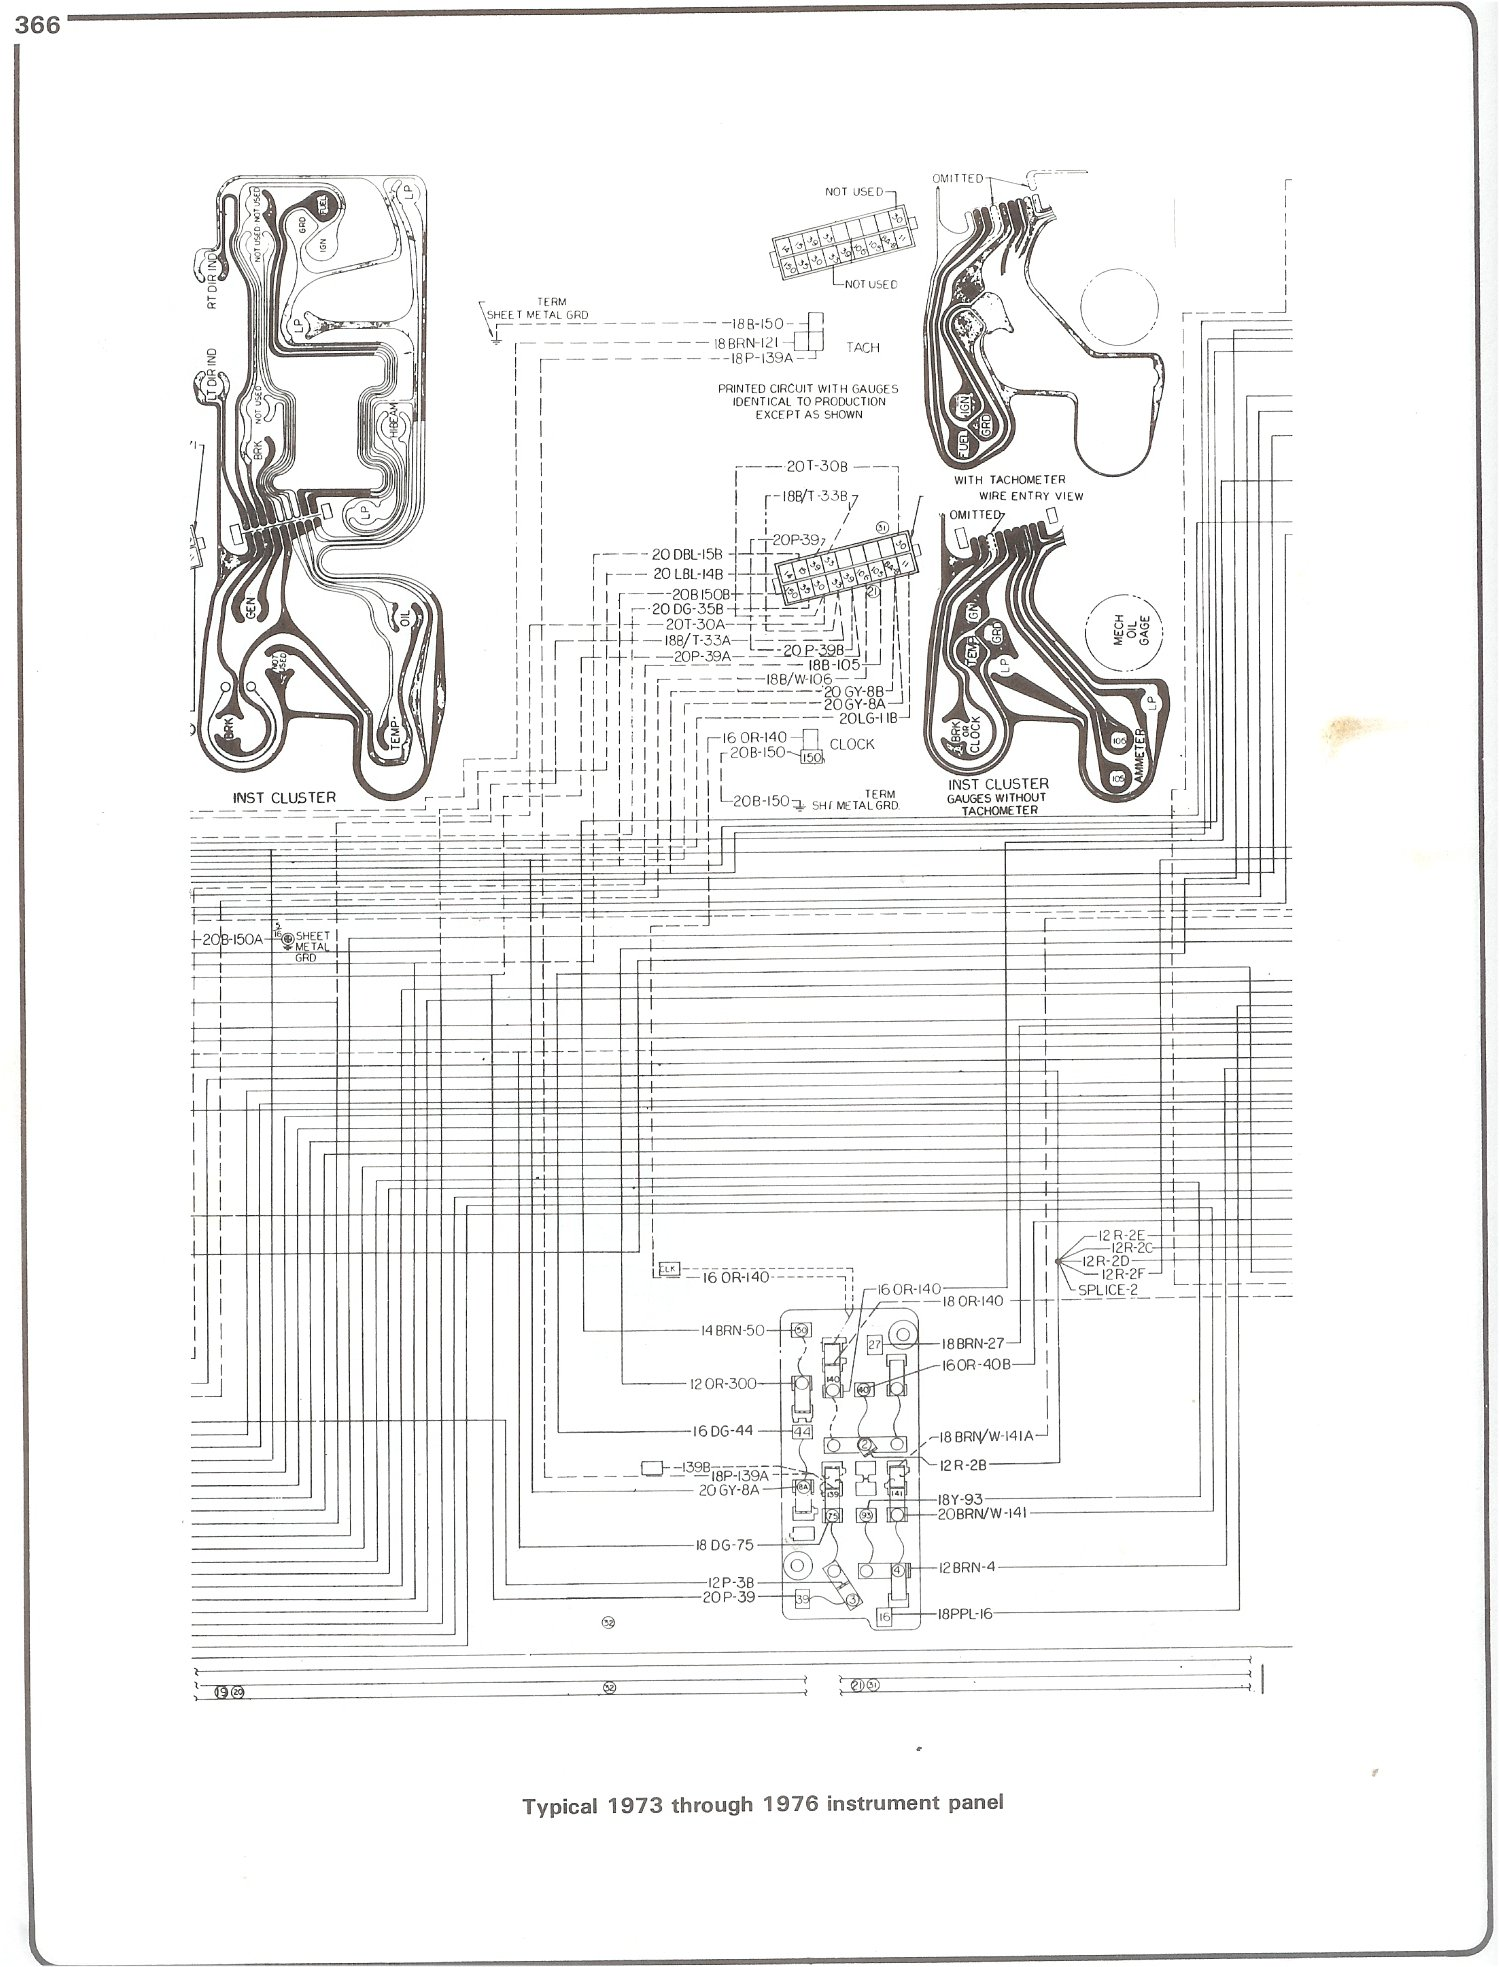 Complete 73-87 Wiring Diagrams on